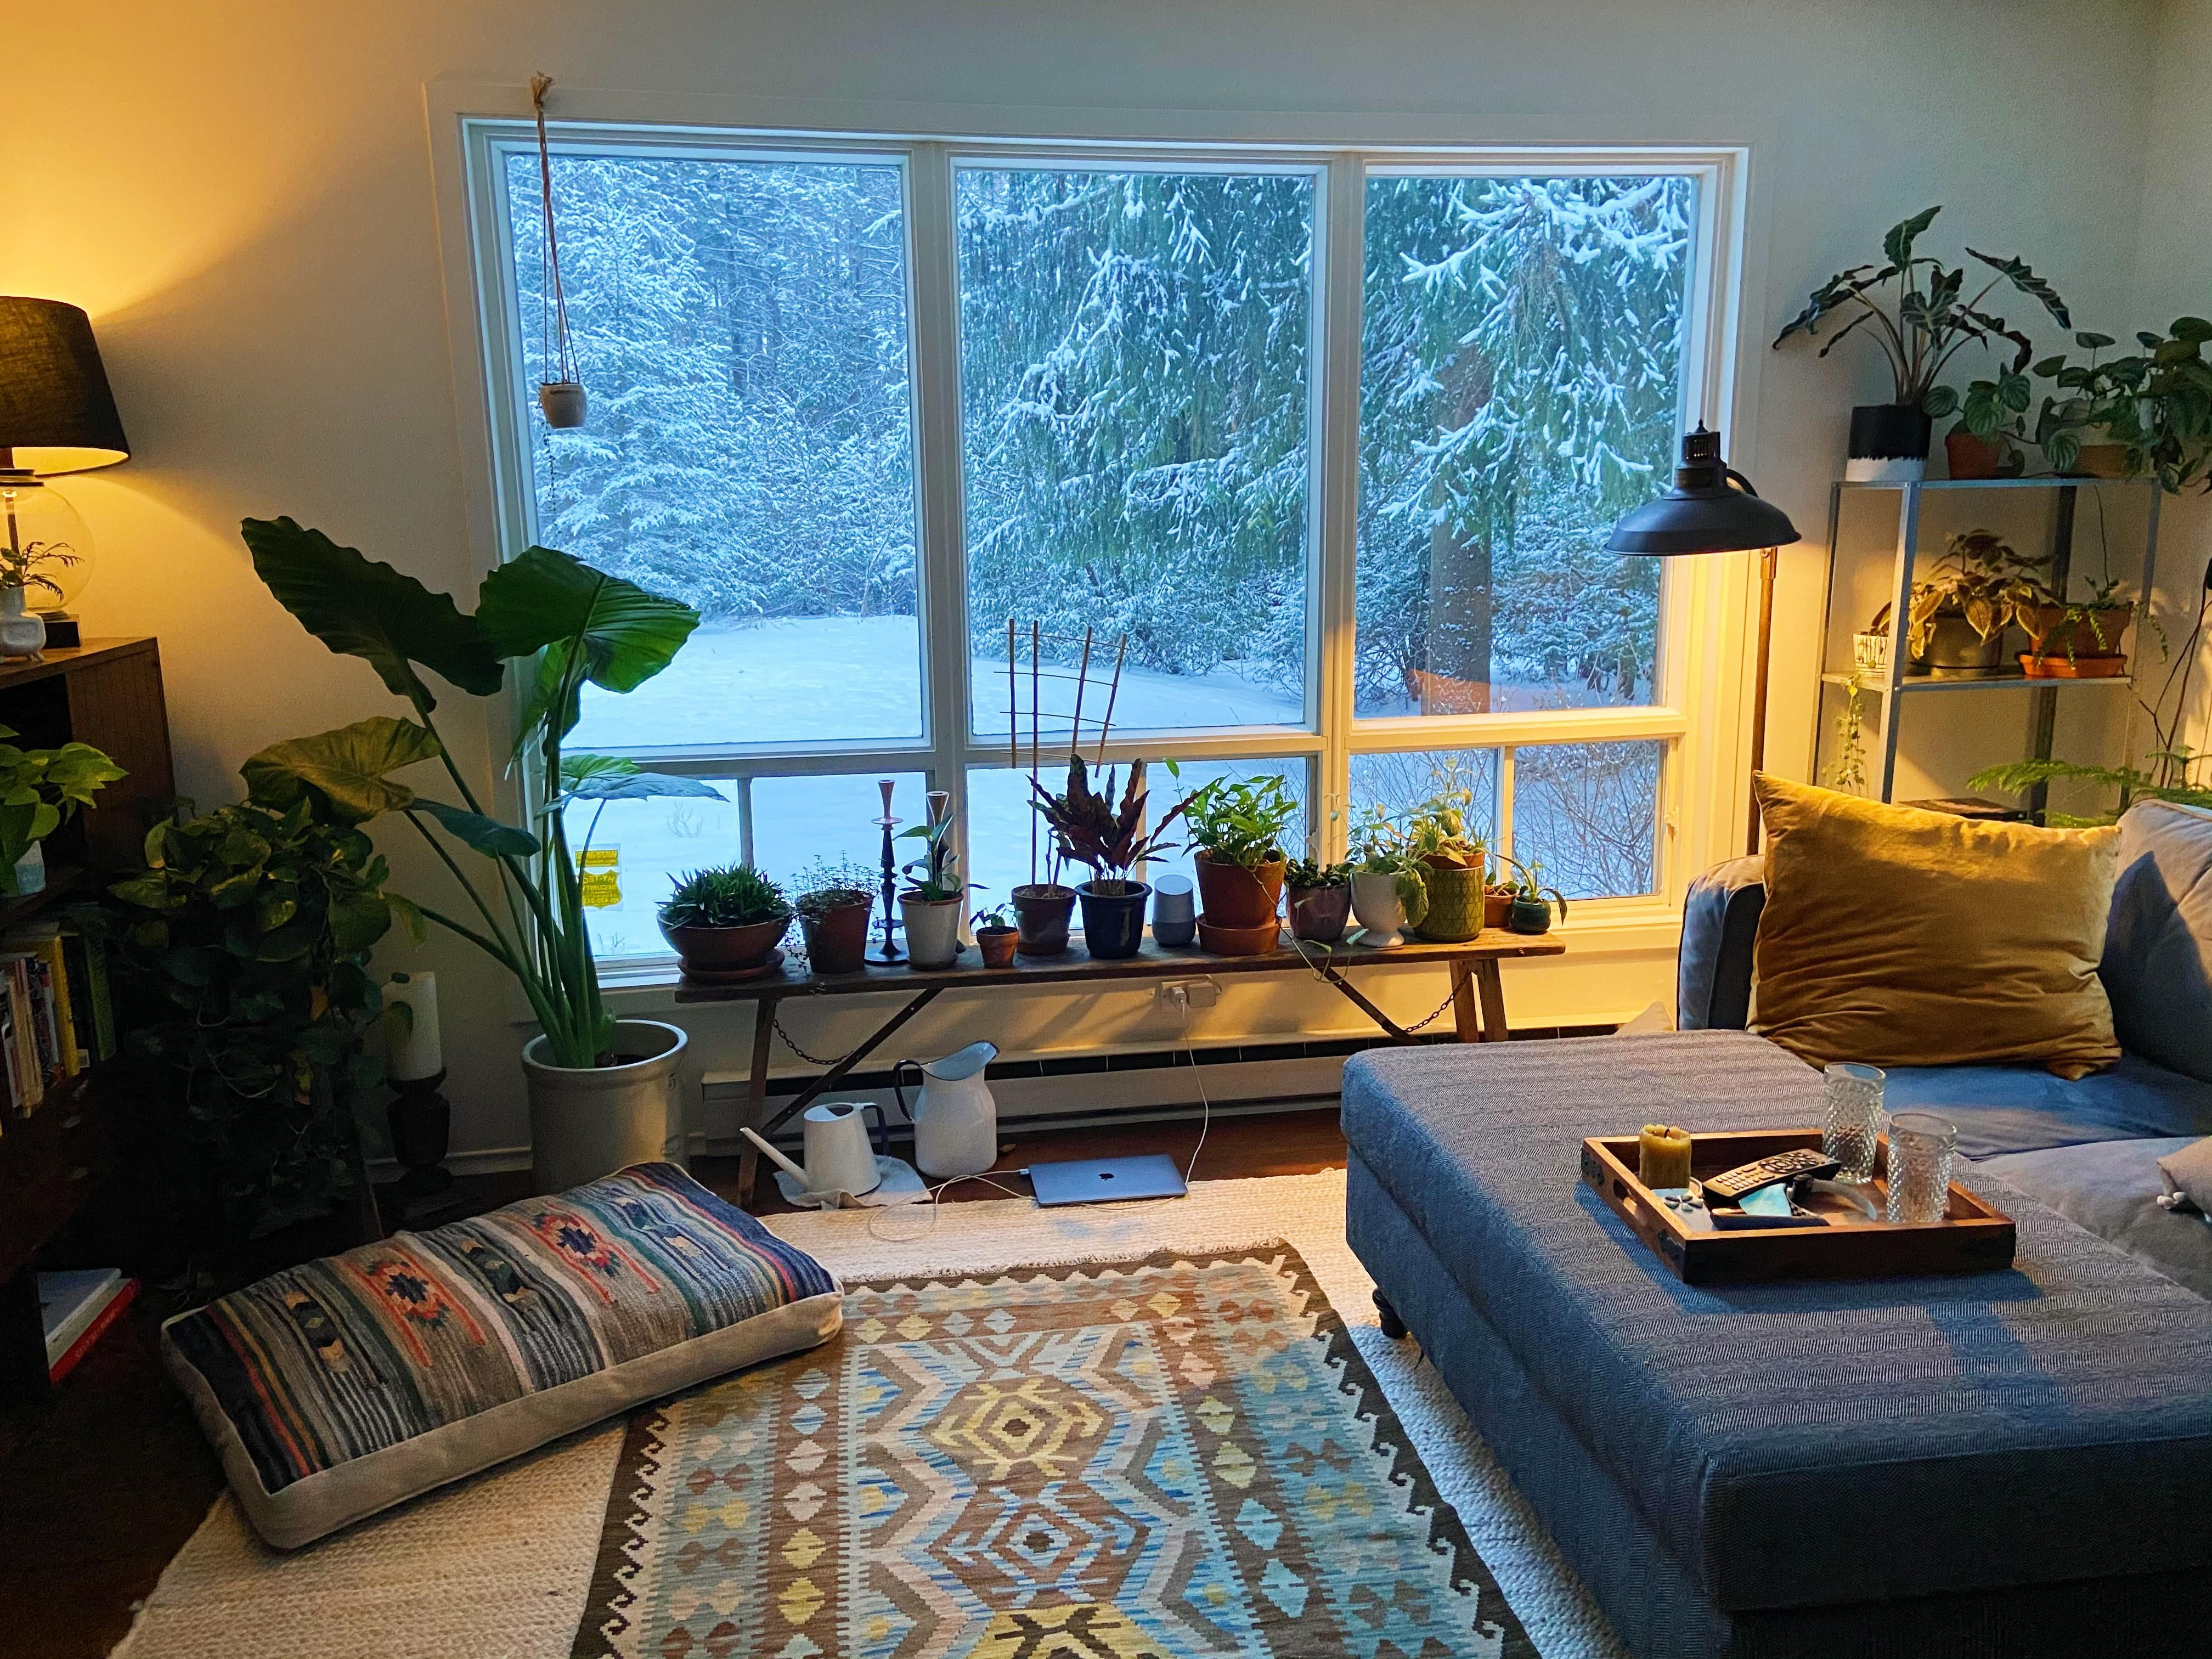 Pretty Cozy View From My Living Room This Morning Imo Daily Home Decor And Interior Design Inspiration Archi Apartment Interior Indoor Design Home Decor View home decor for small living room